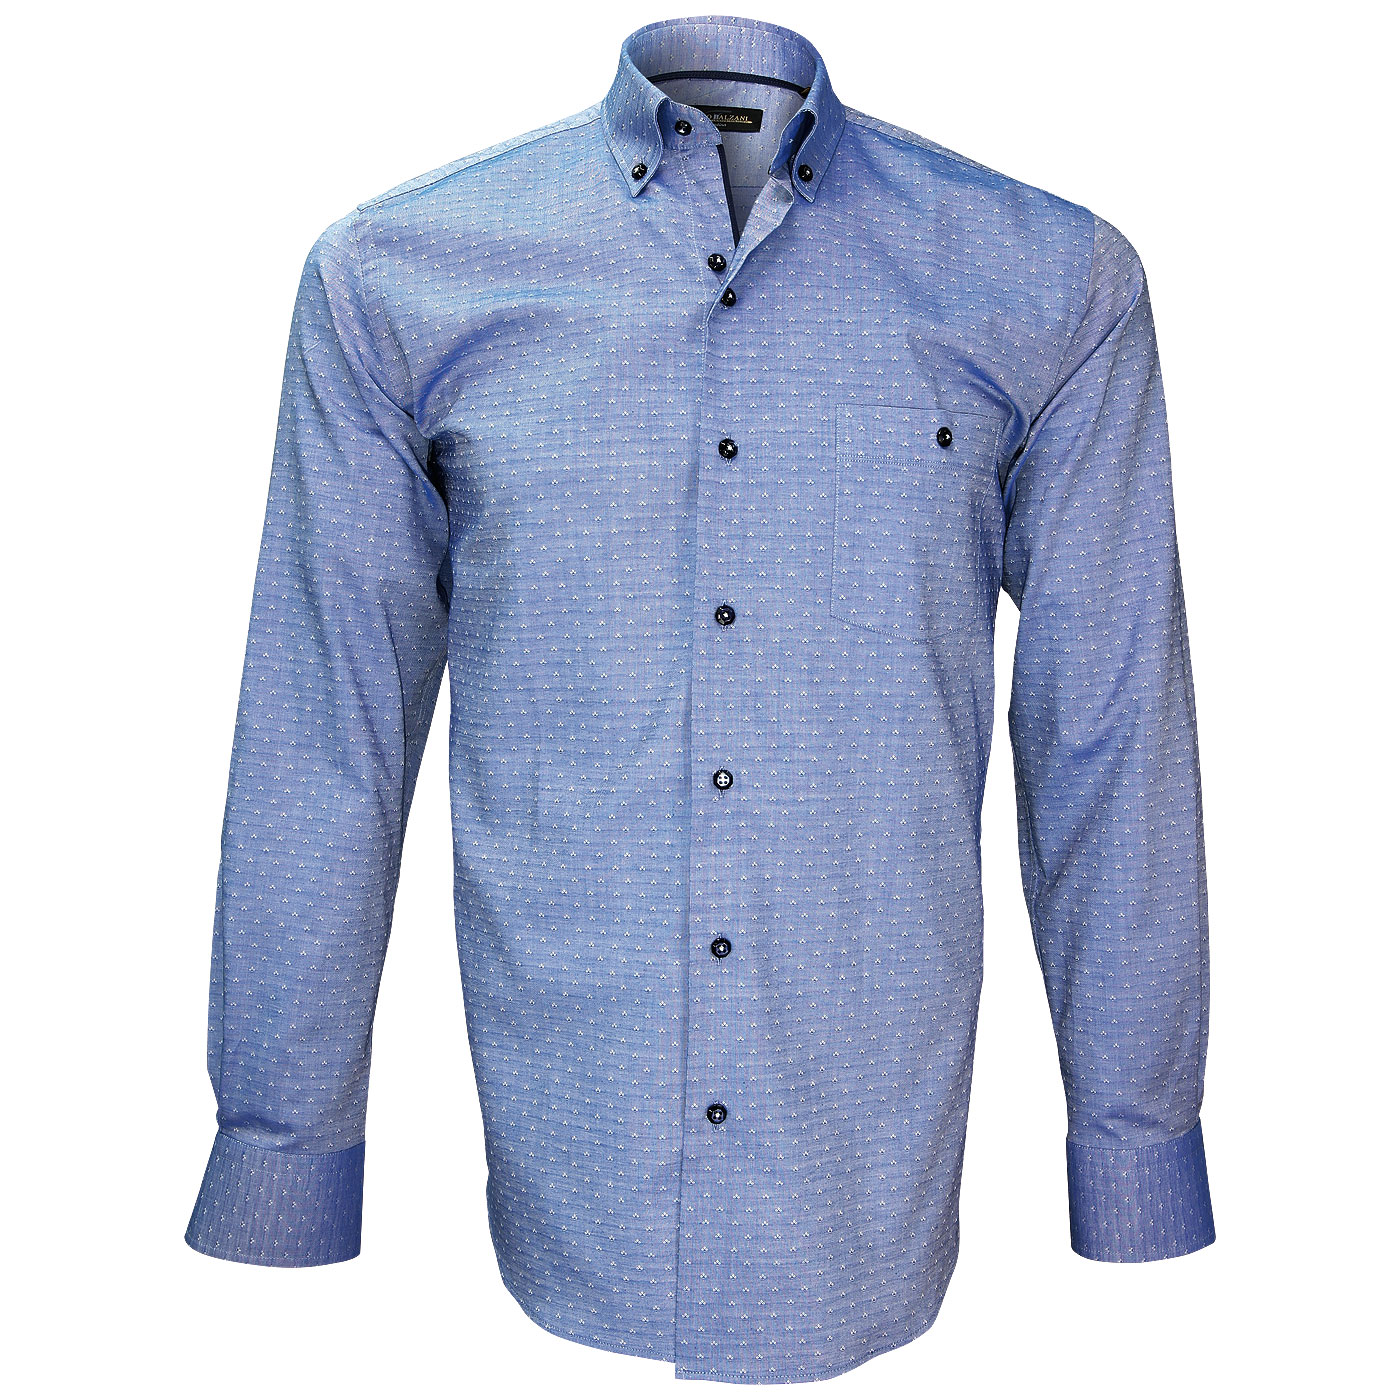 Oxford shirt for Man, Casual british Style